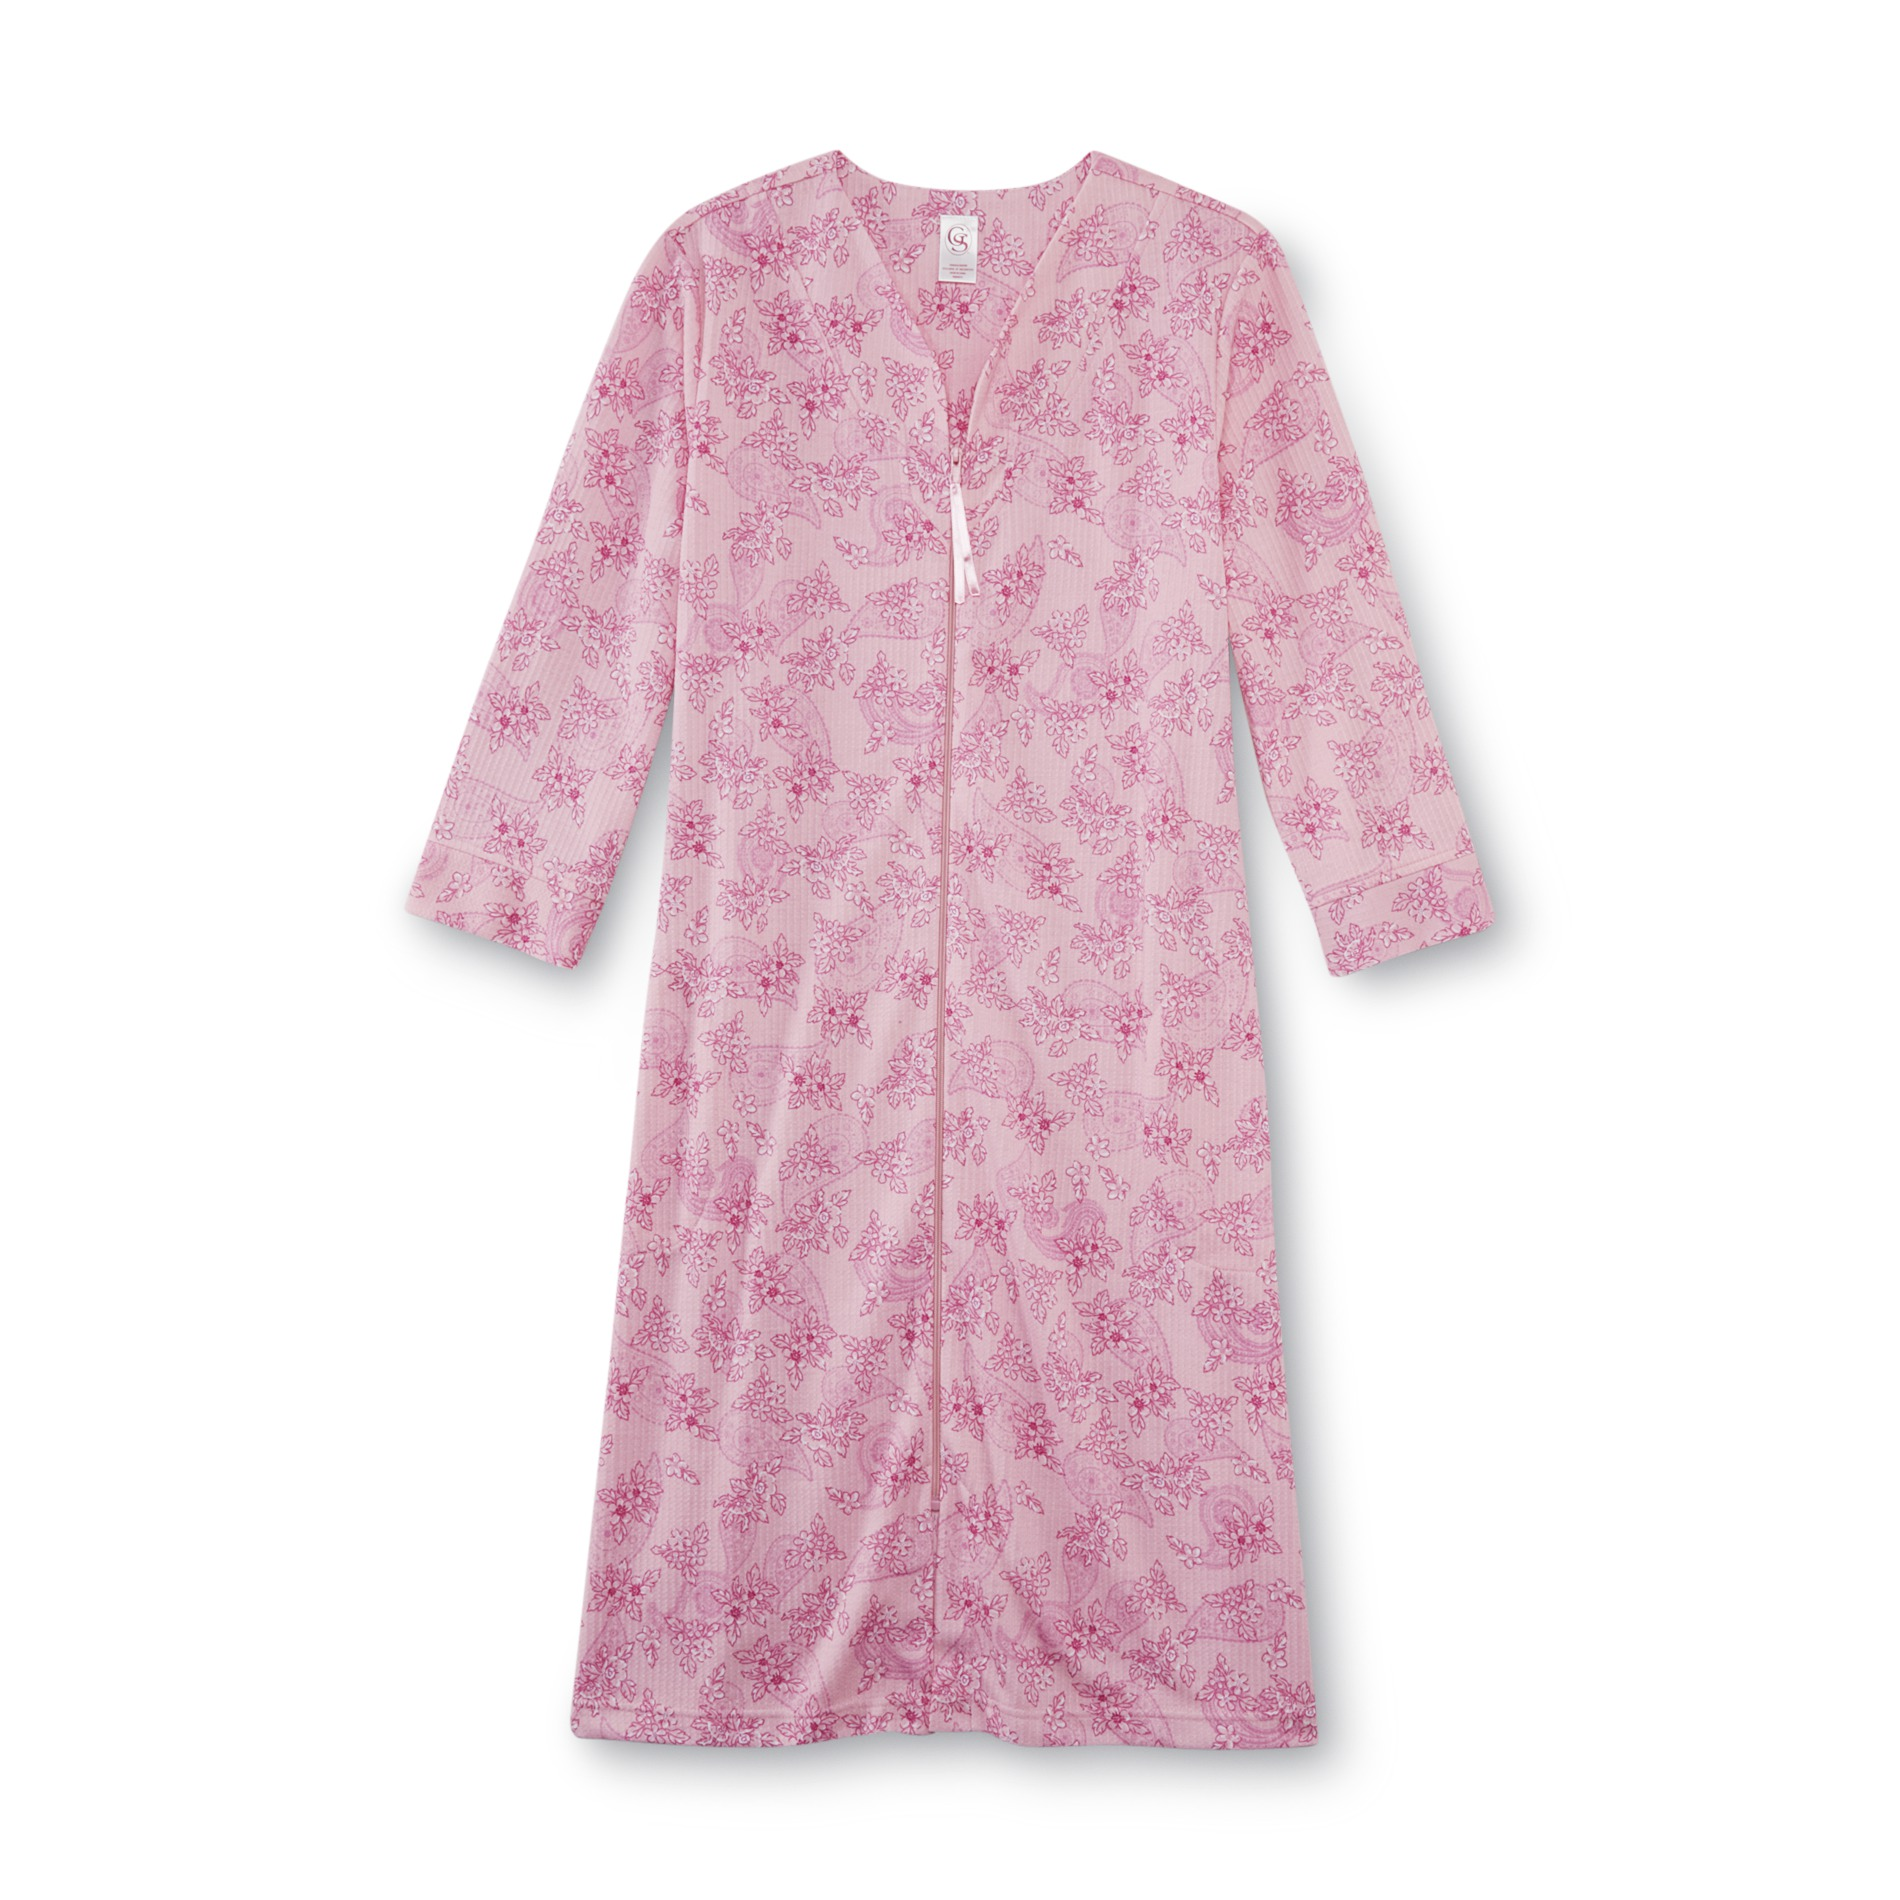 Granada Women's Knit Duster Robe - Floral & Paisley